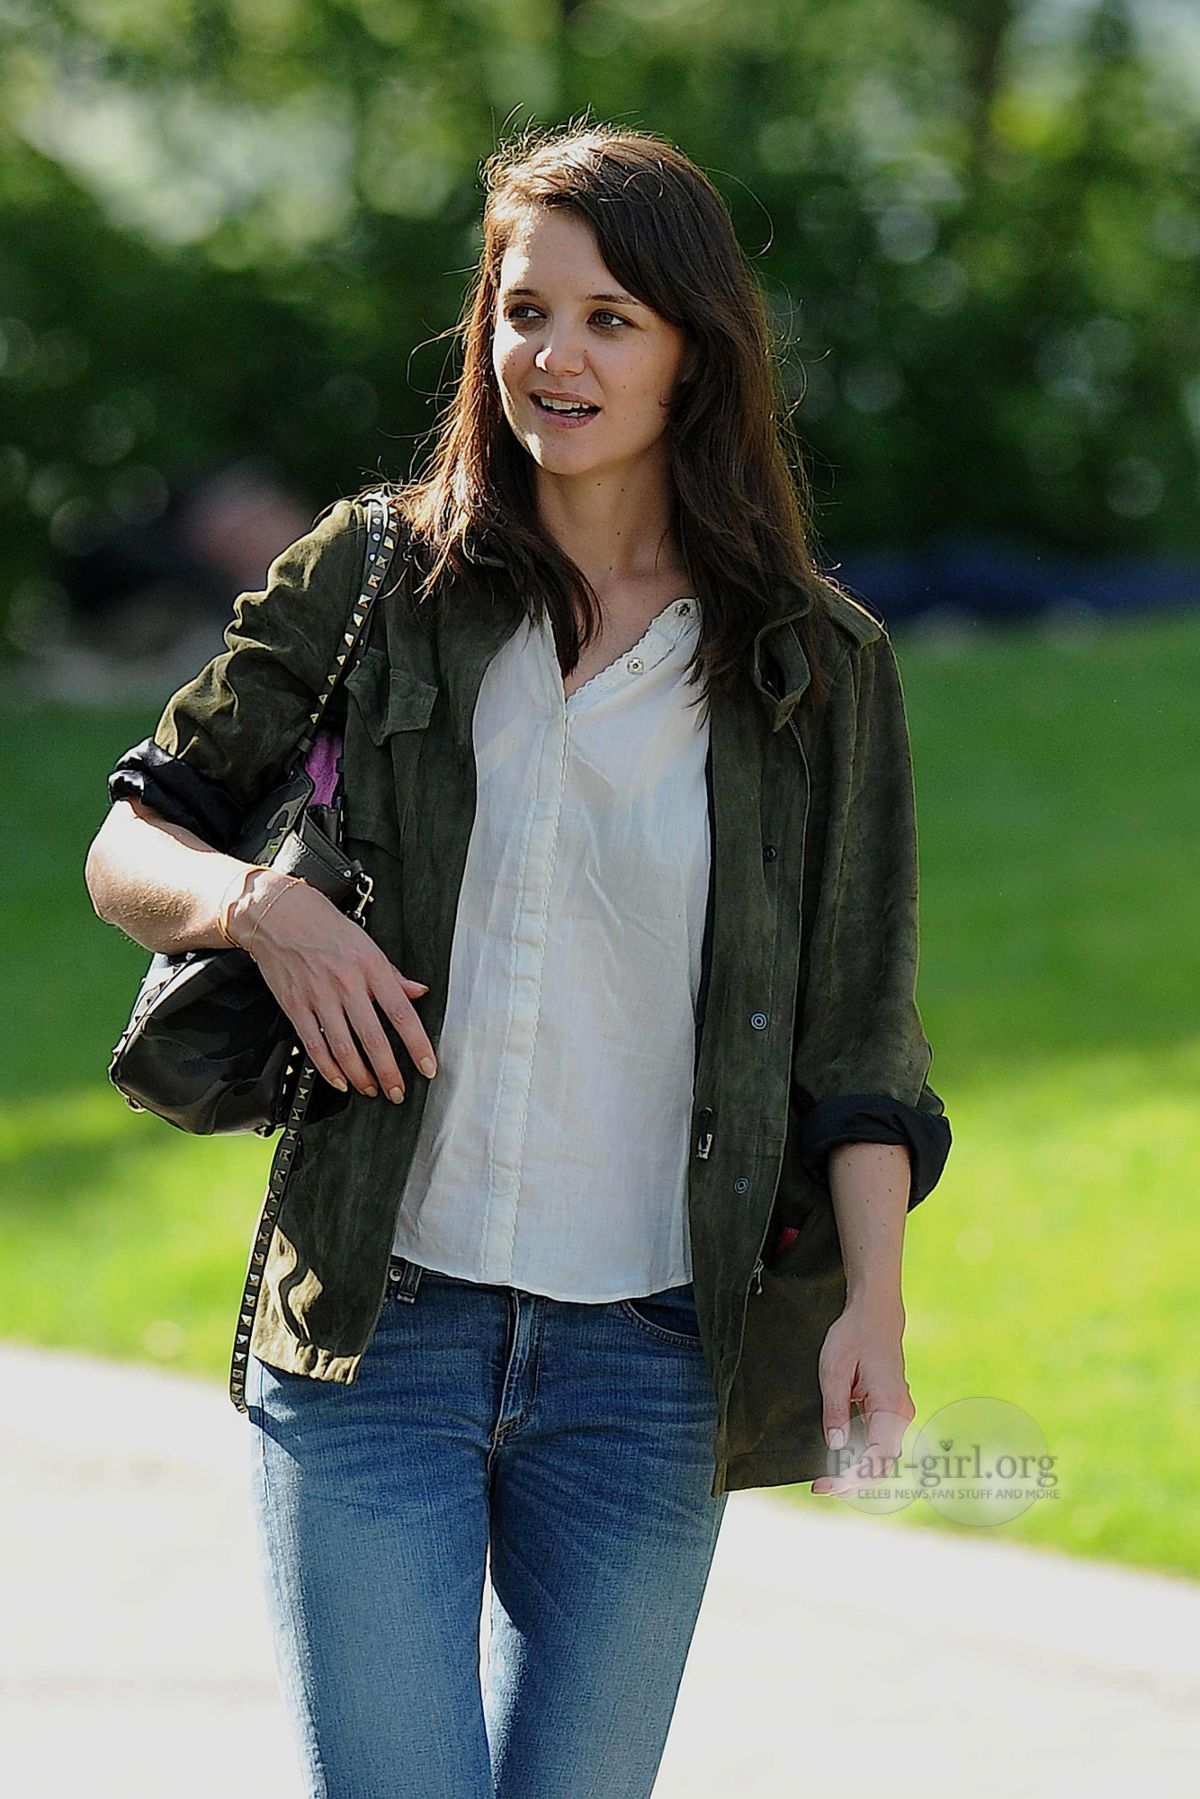 KATIE HOLMES at a Park in New York